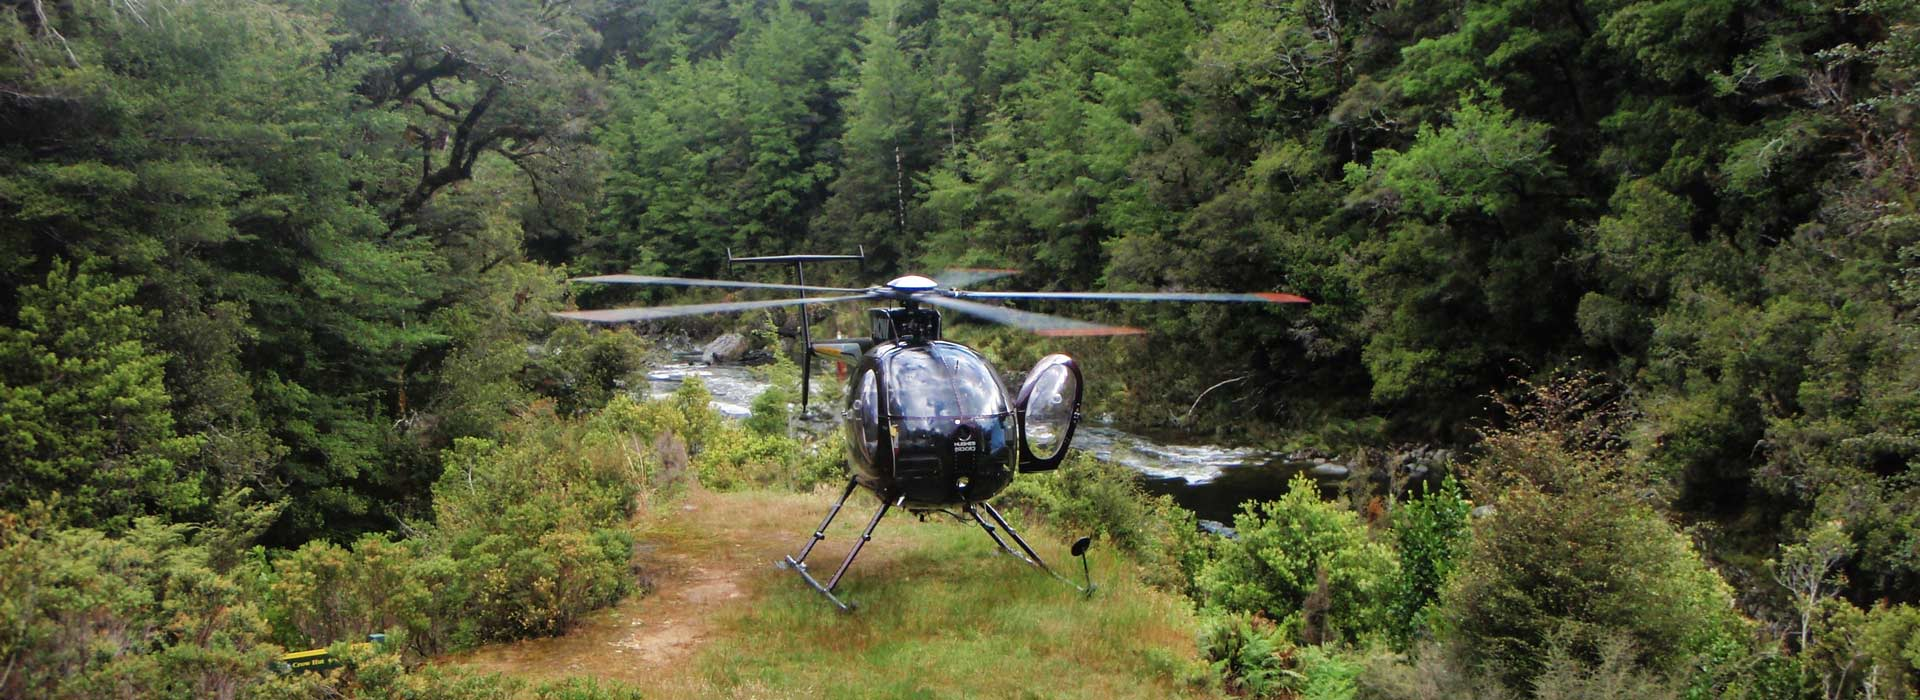 Heli fishing in New Zealand;s South Island